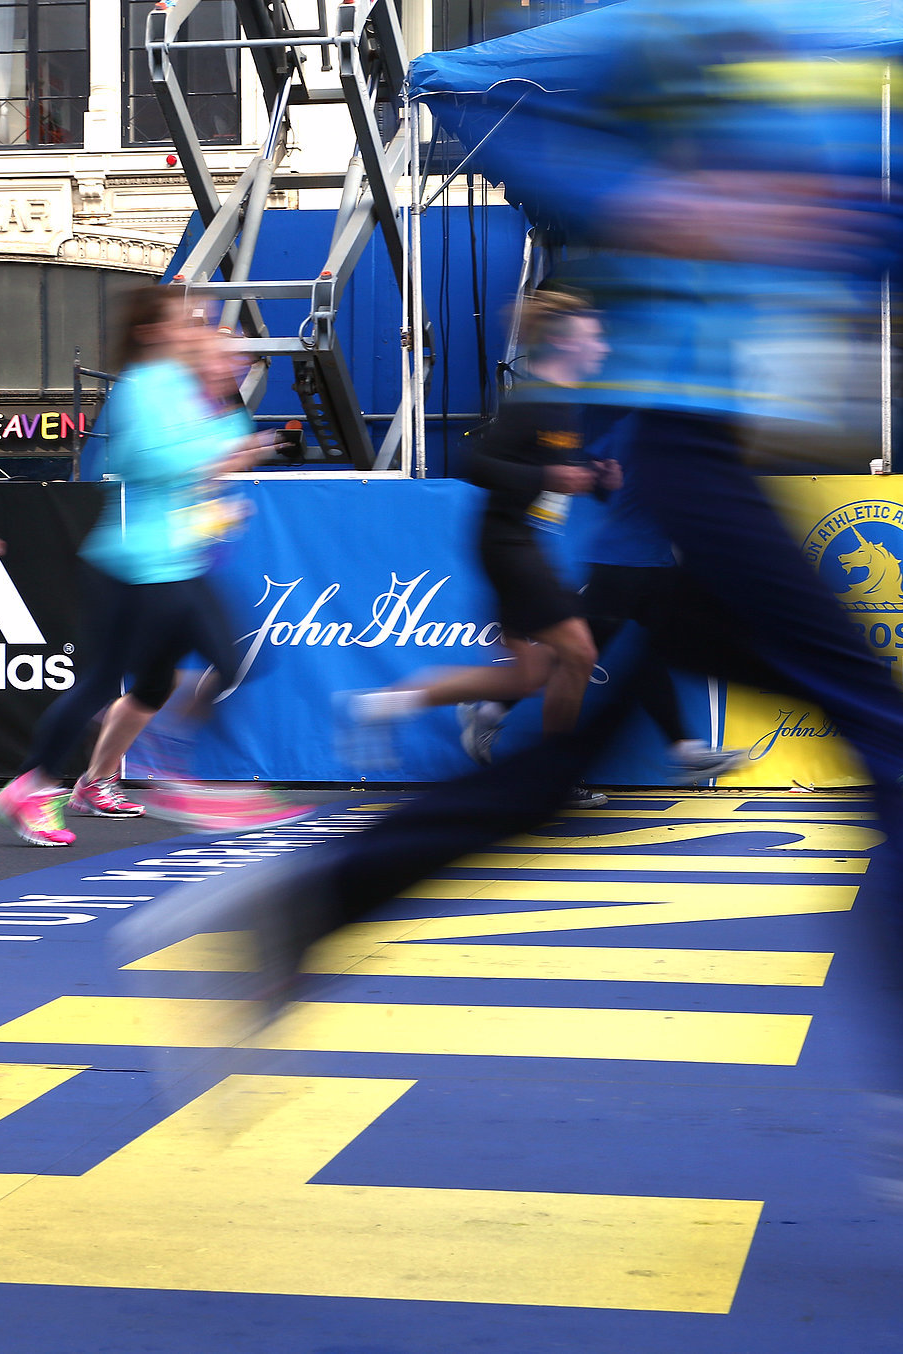 We are stoked for the Boston Marathon. Yeah, we all know it is 26.2 miles, but here are some fun facts to know about this famous race.